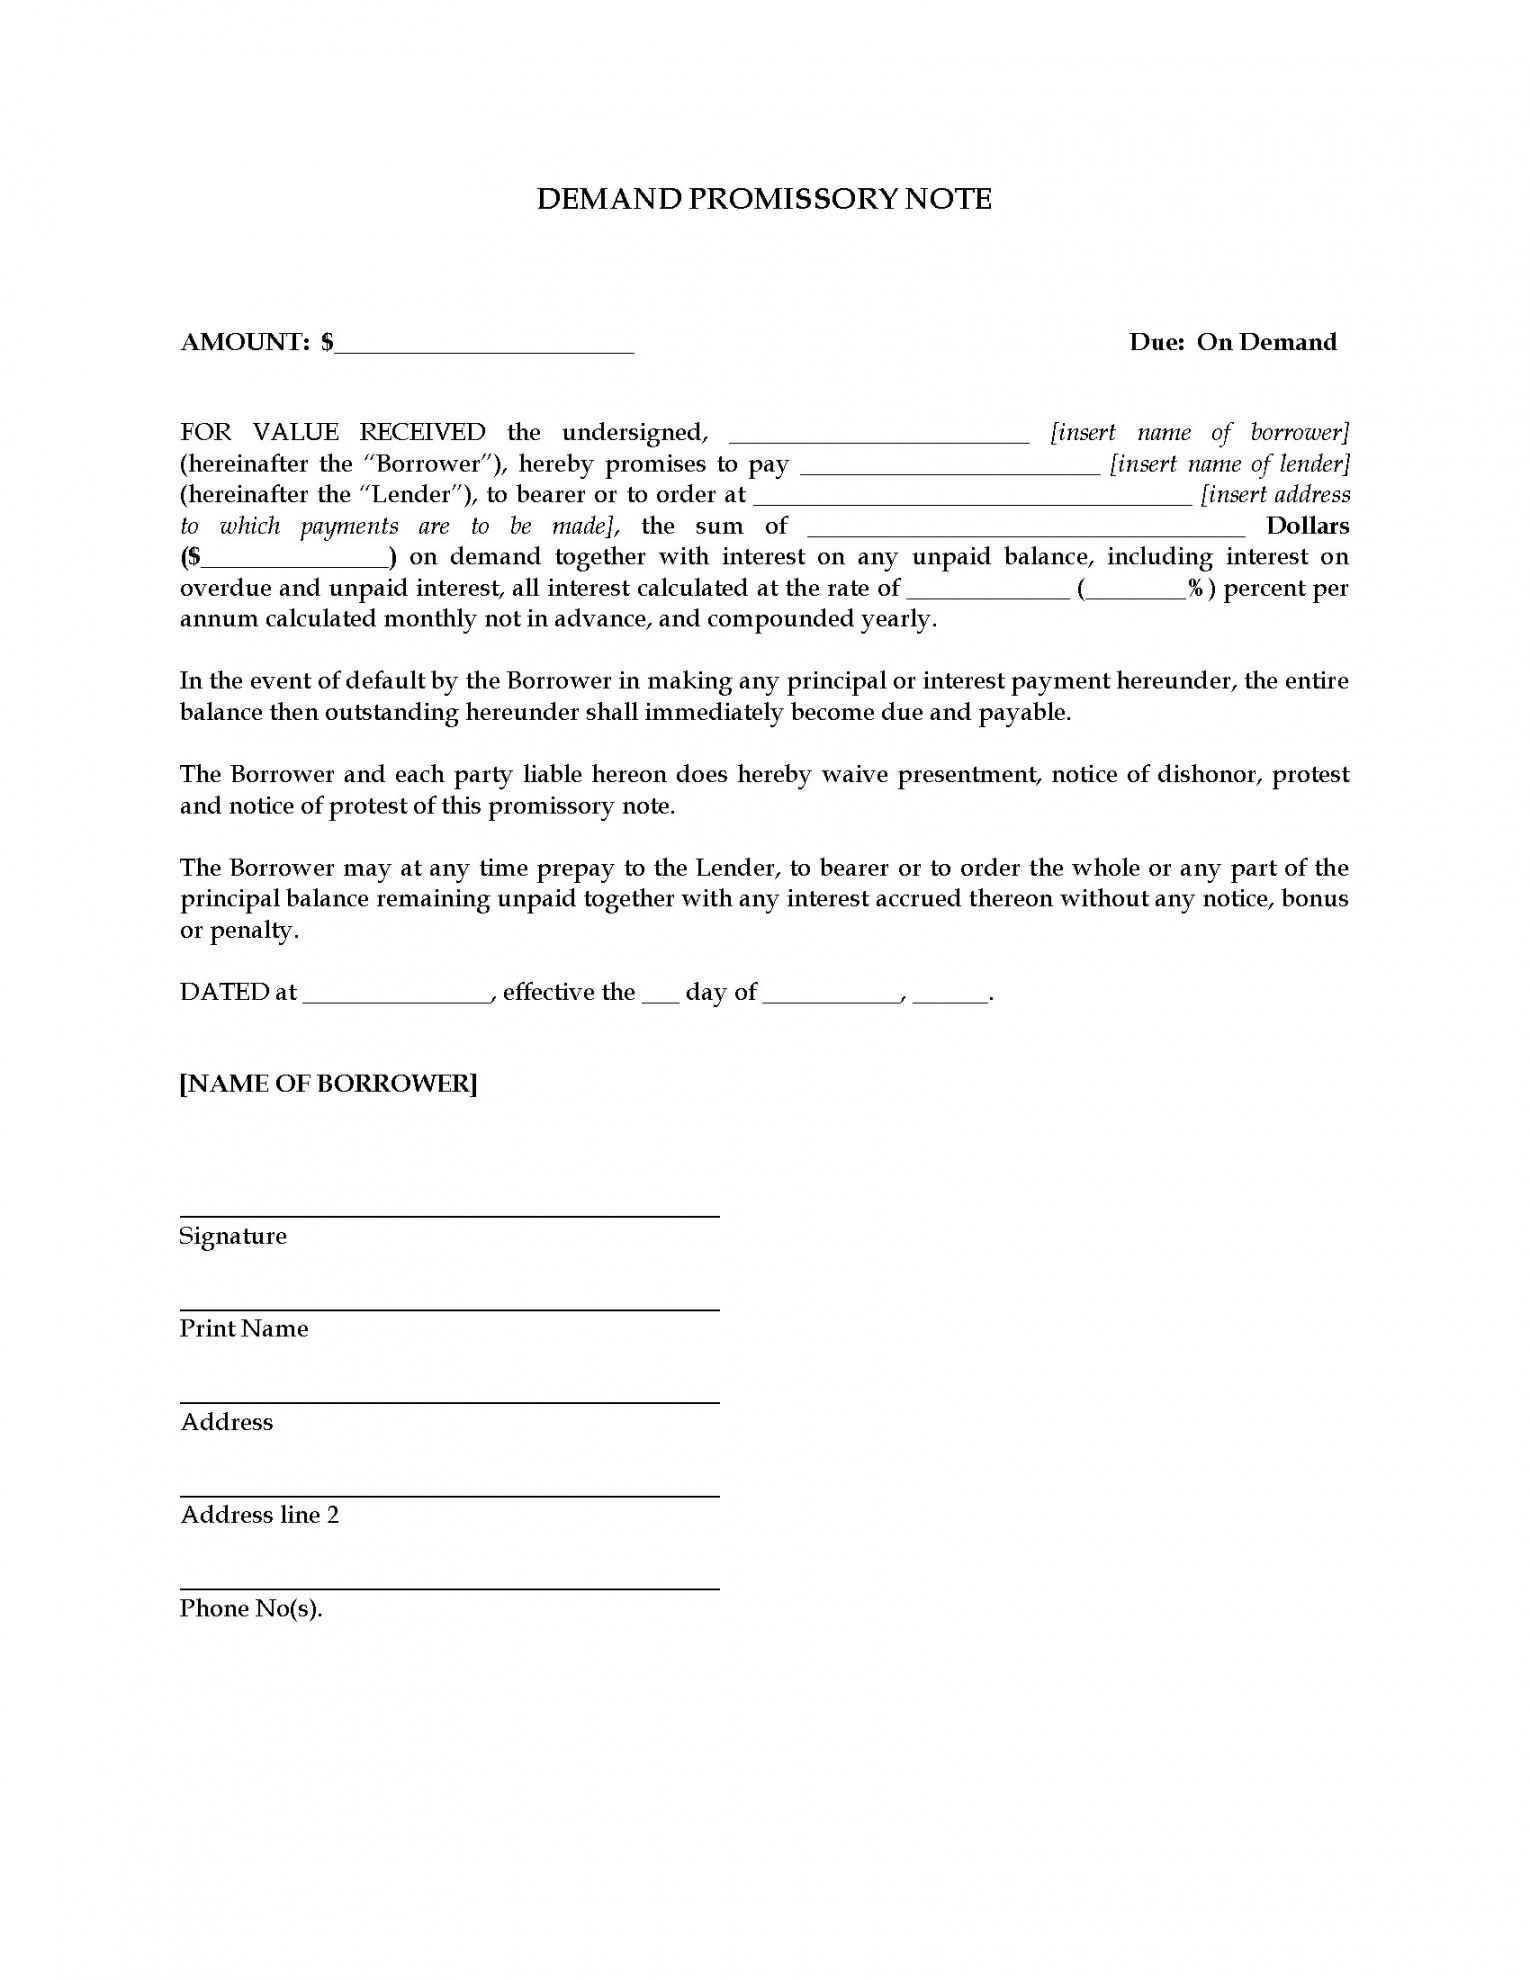 printable demand promissory note  legal forms and business templates australian promissory note template excel